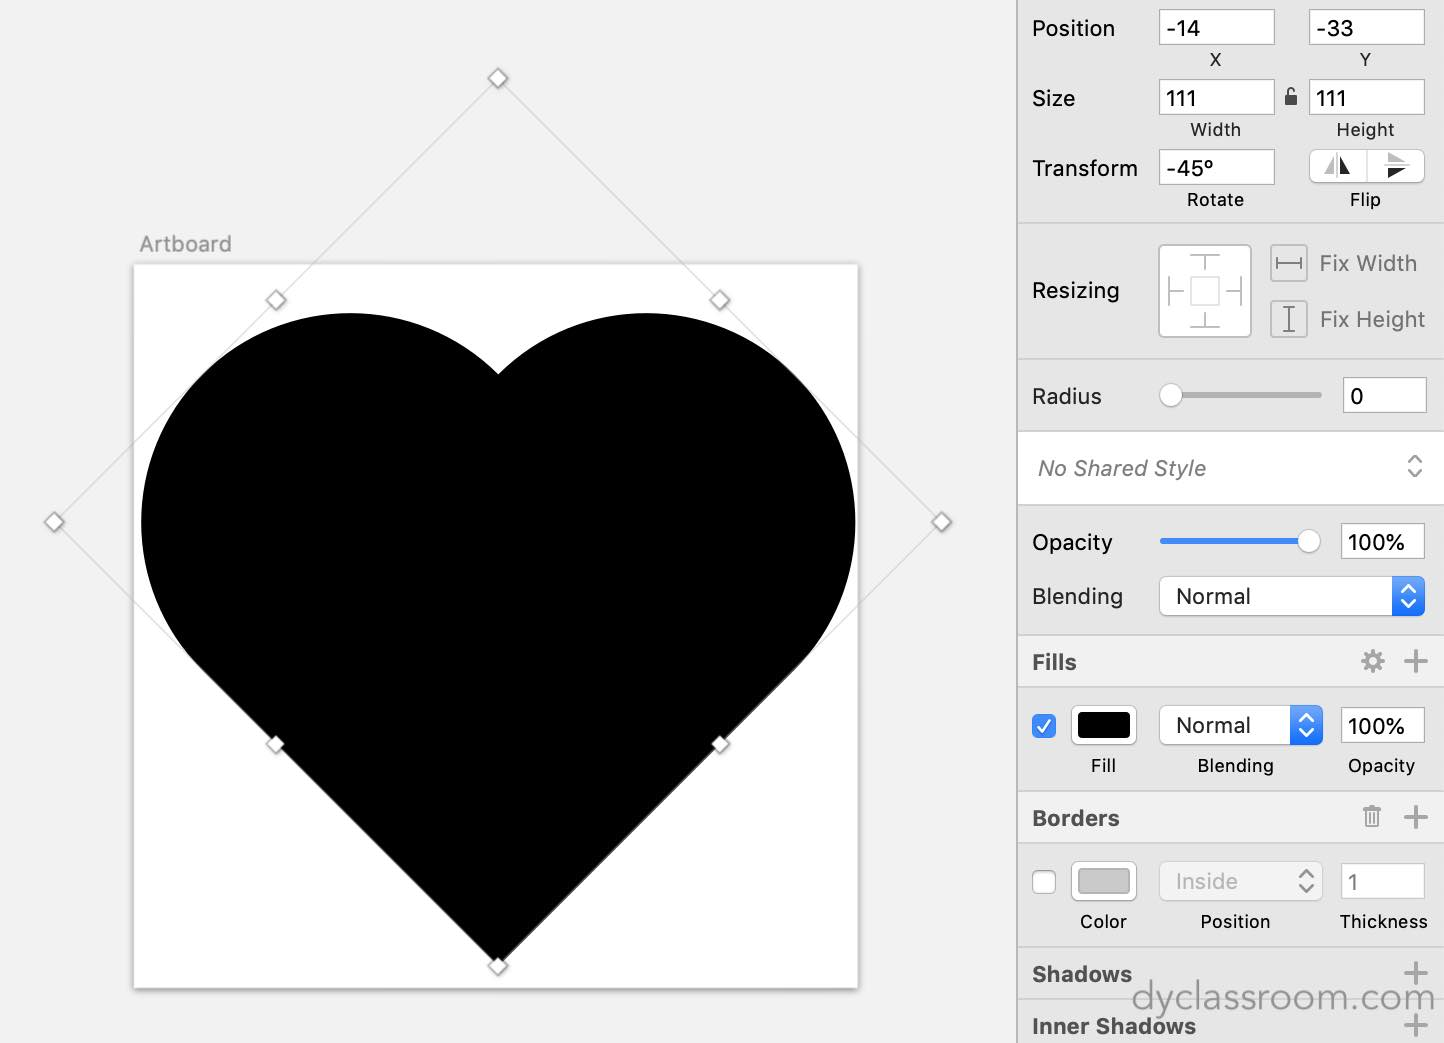 sketch app - heart icon - heart shape rotated 45 degrees